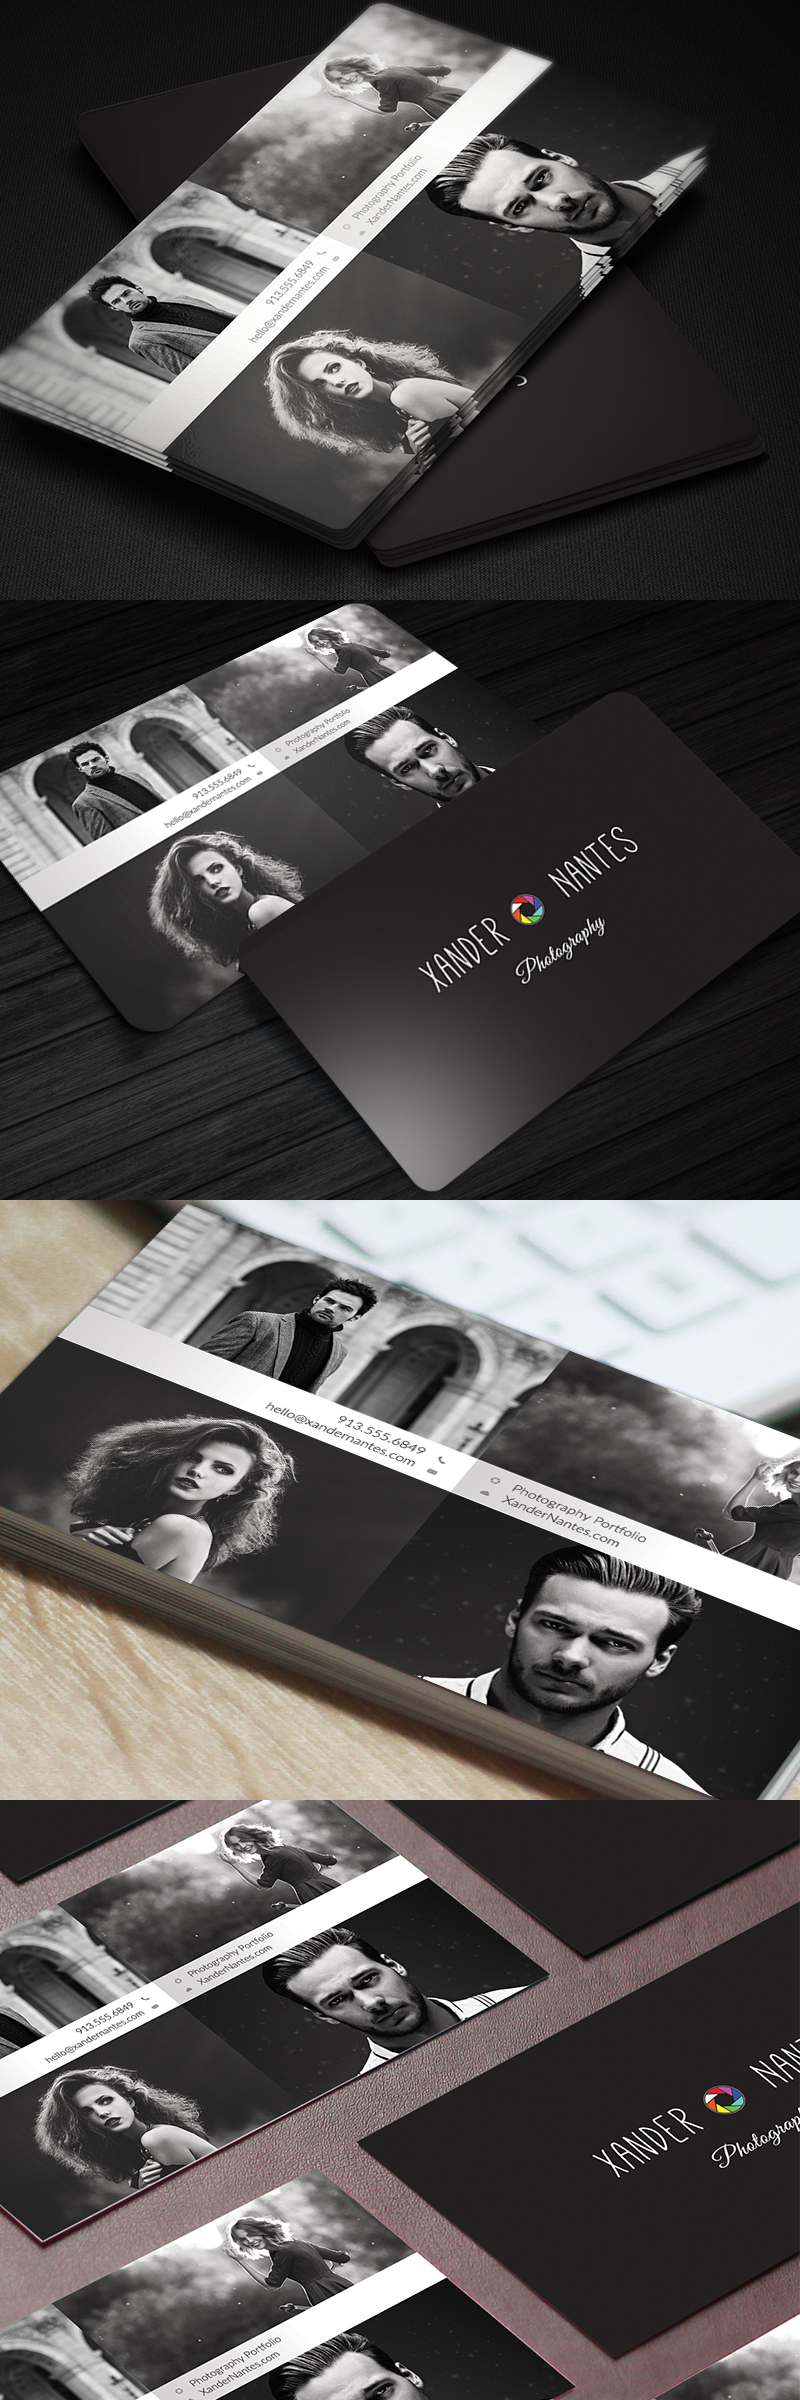 PhotographerBusinessCard_v3_QuadPix_preview_long